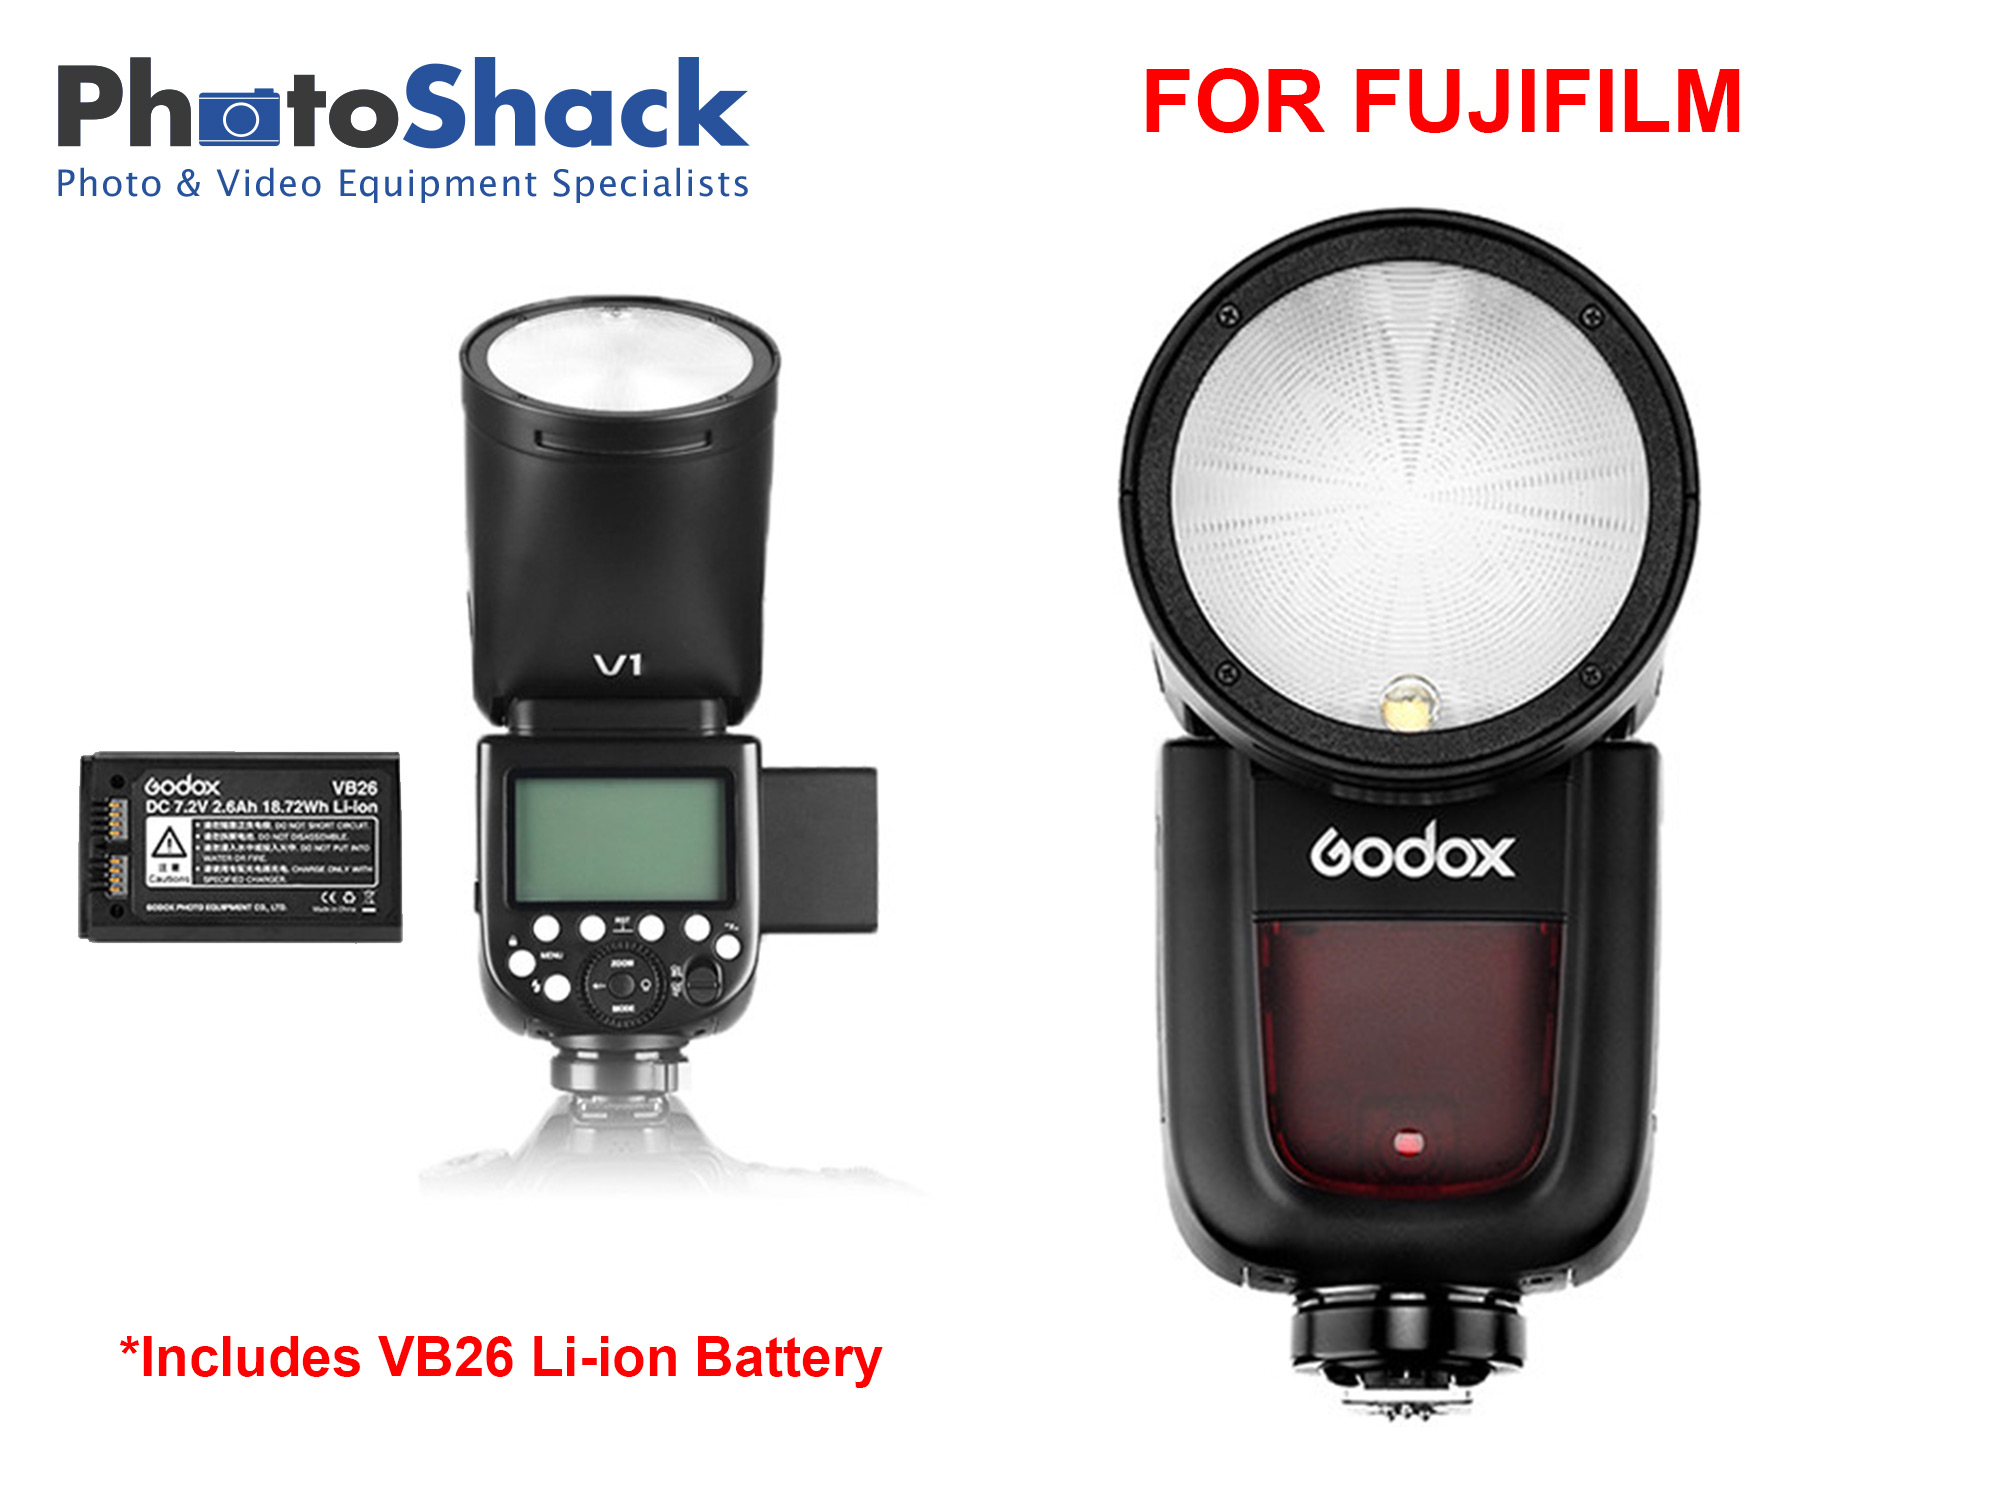 Godox V1 Flash for Fujifilm